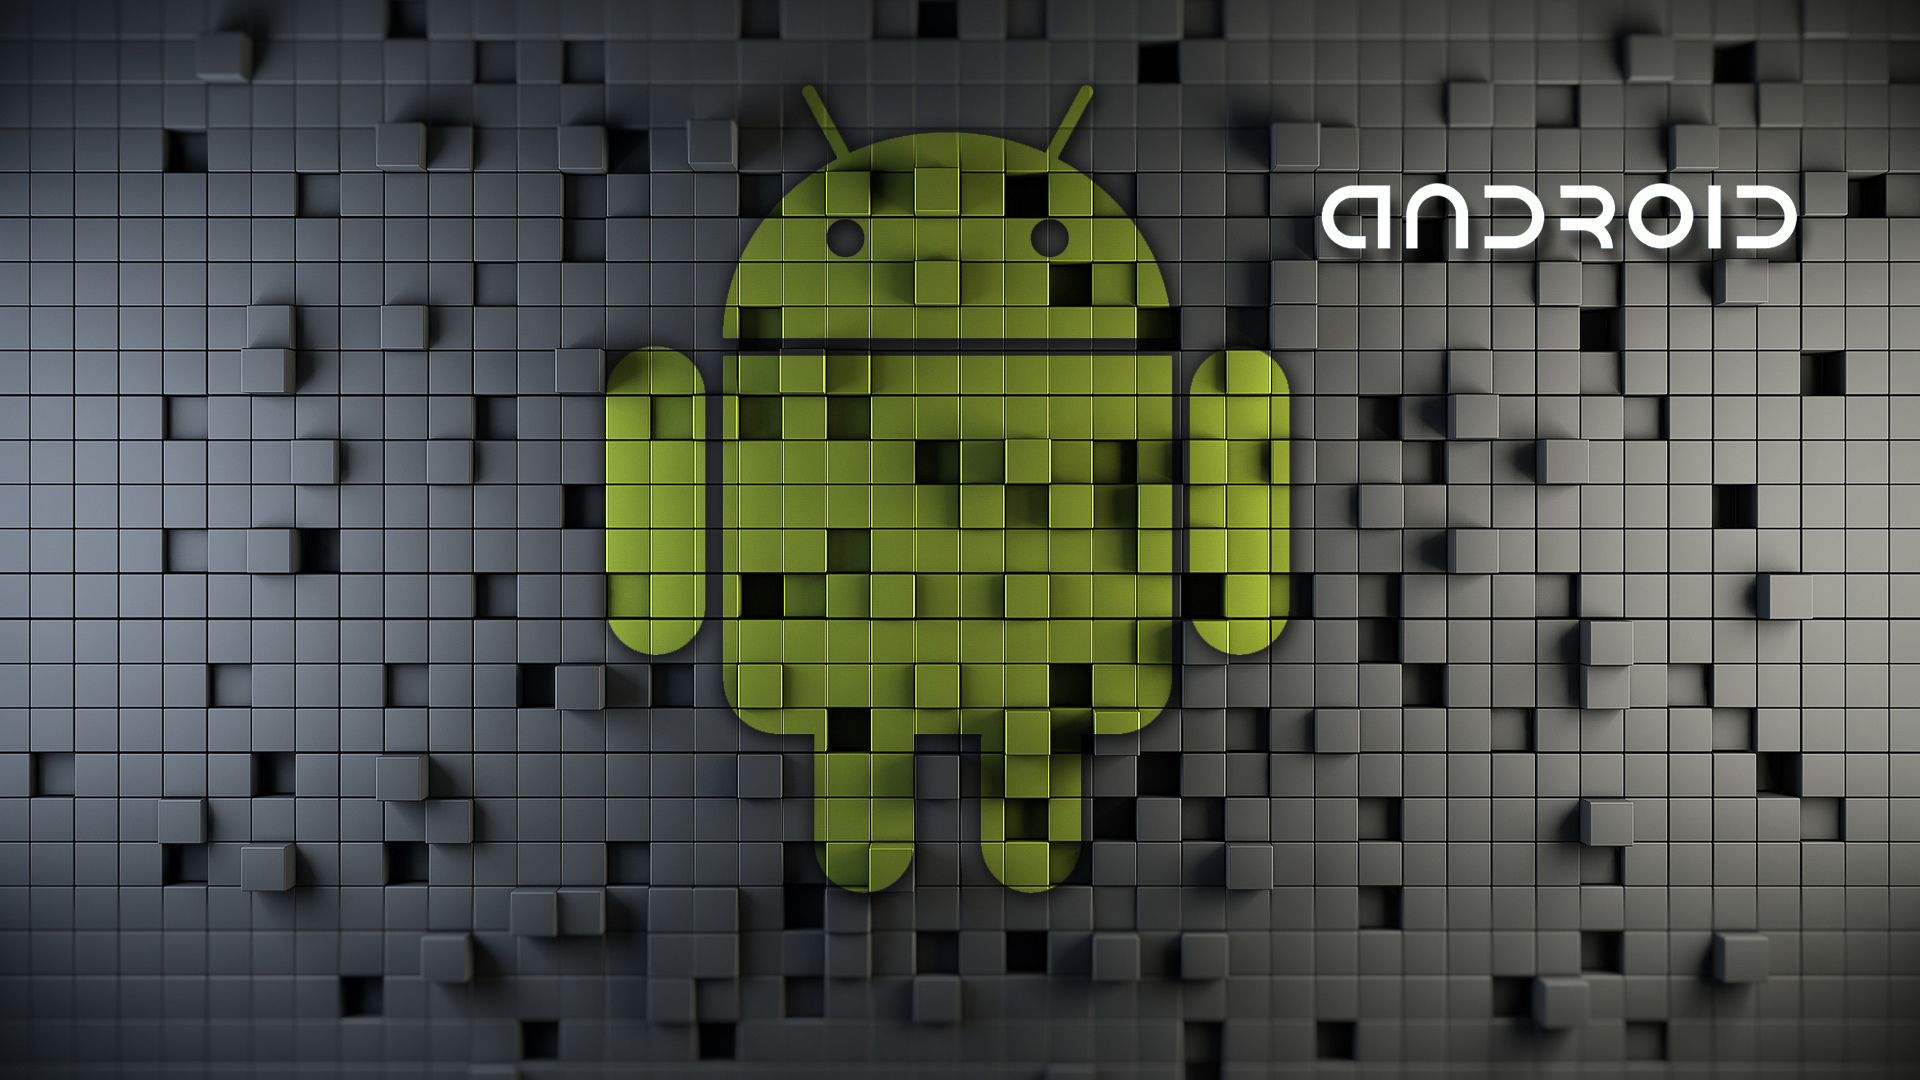 20 wallpapers android vs apple - Todos tuyos